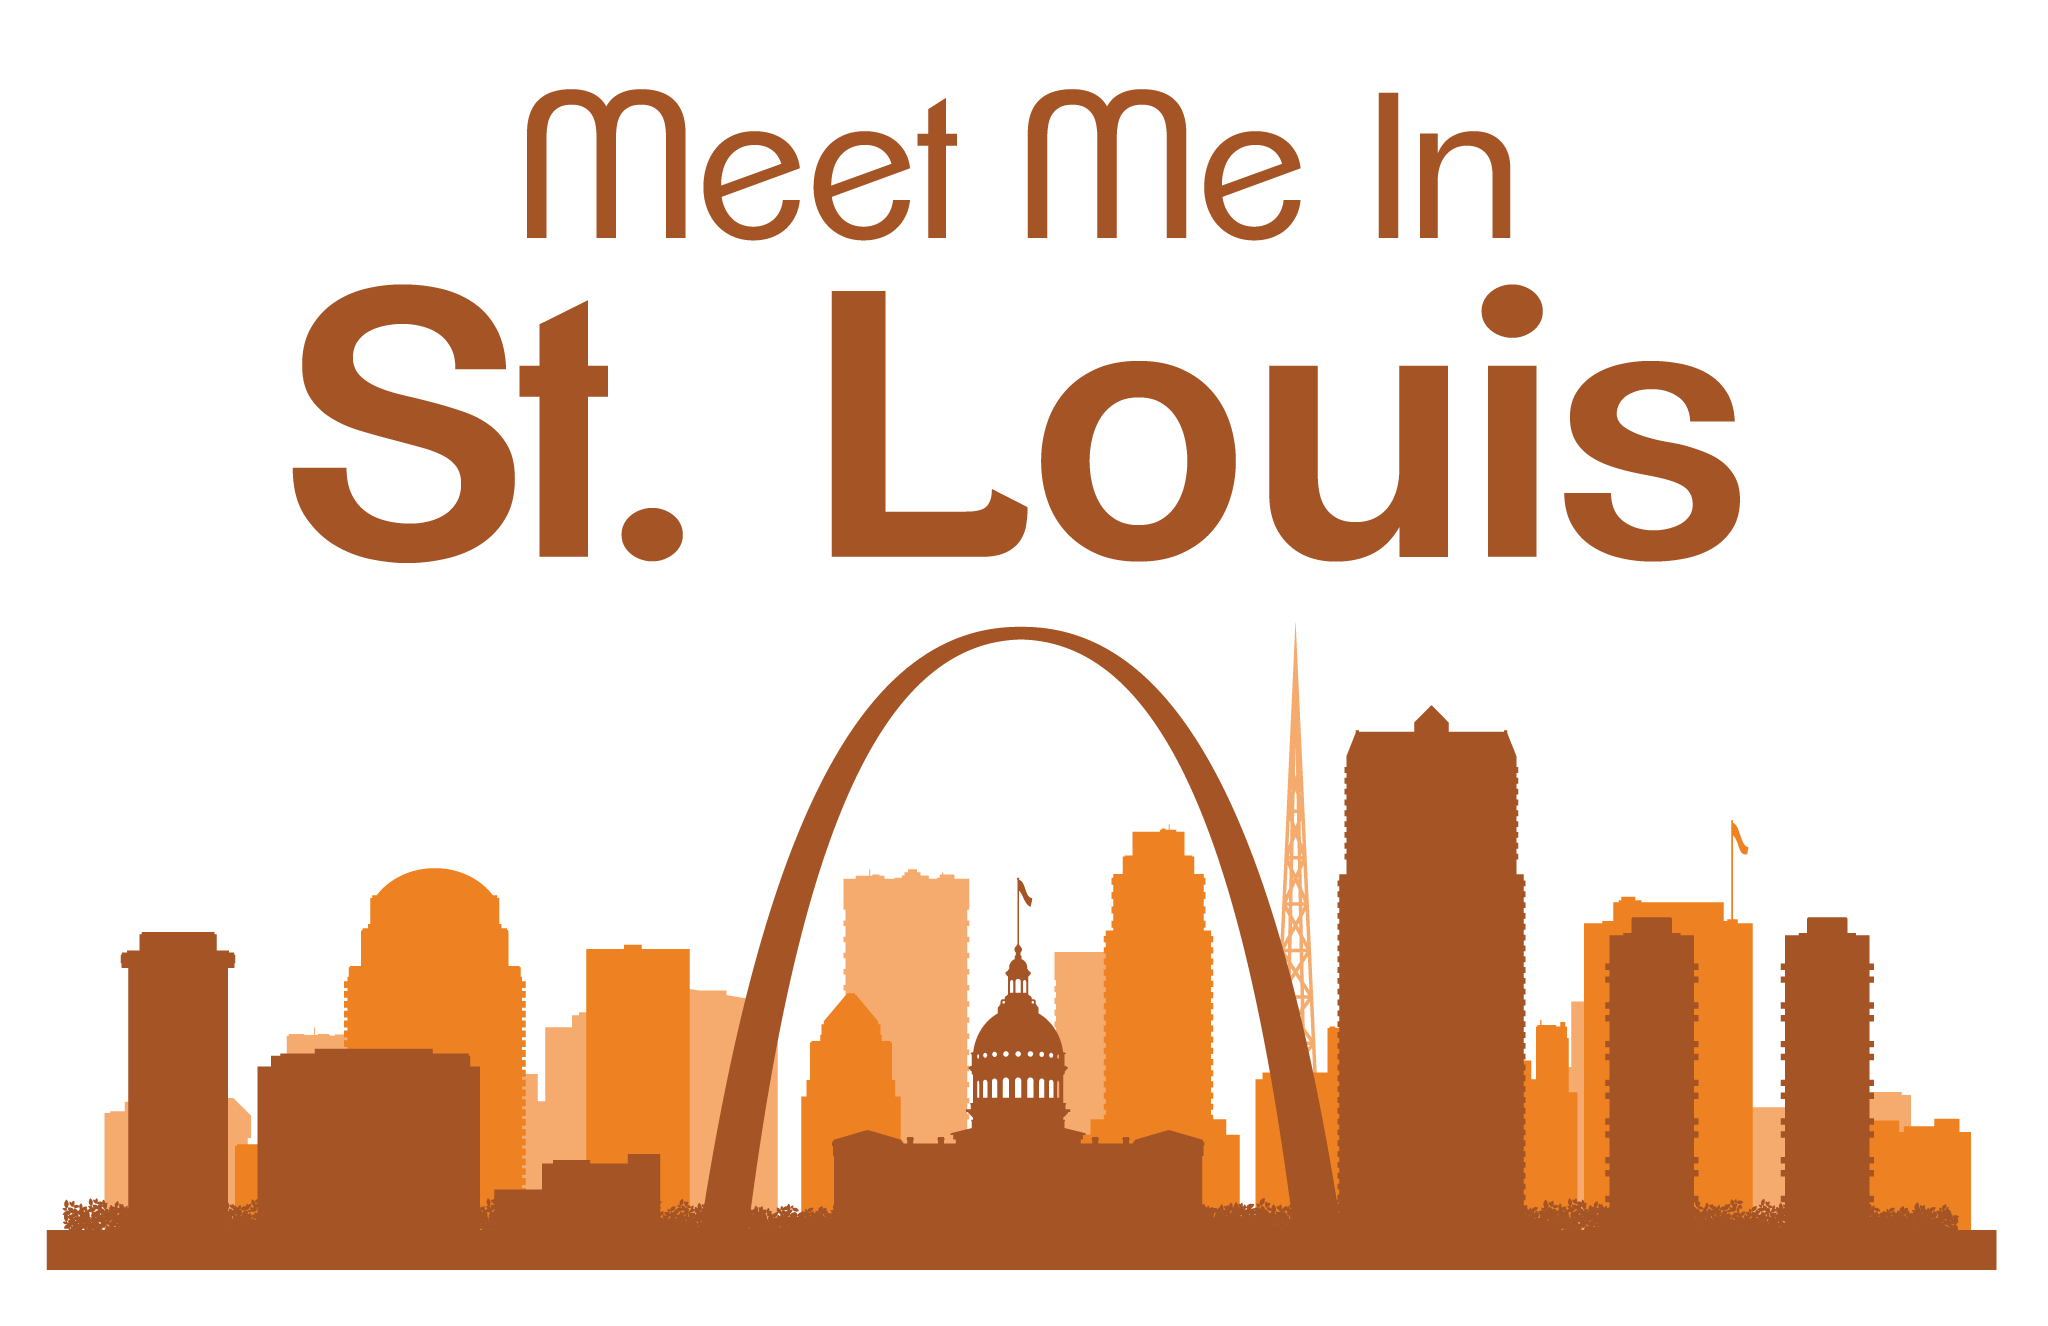 fpn_1552843324__meet-me-in-stl_2019.png